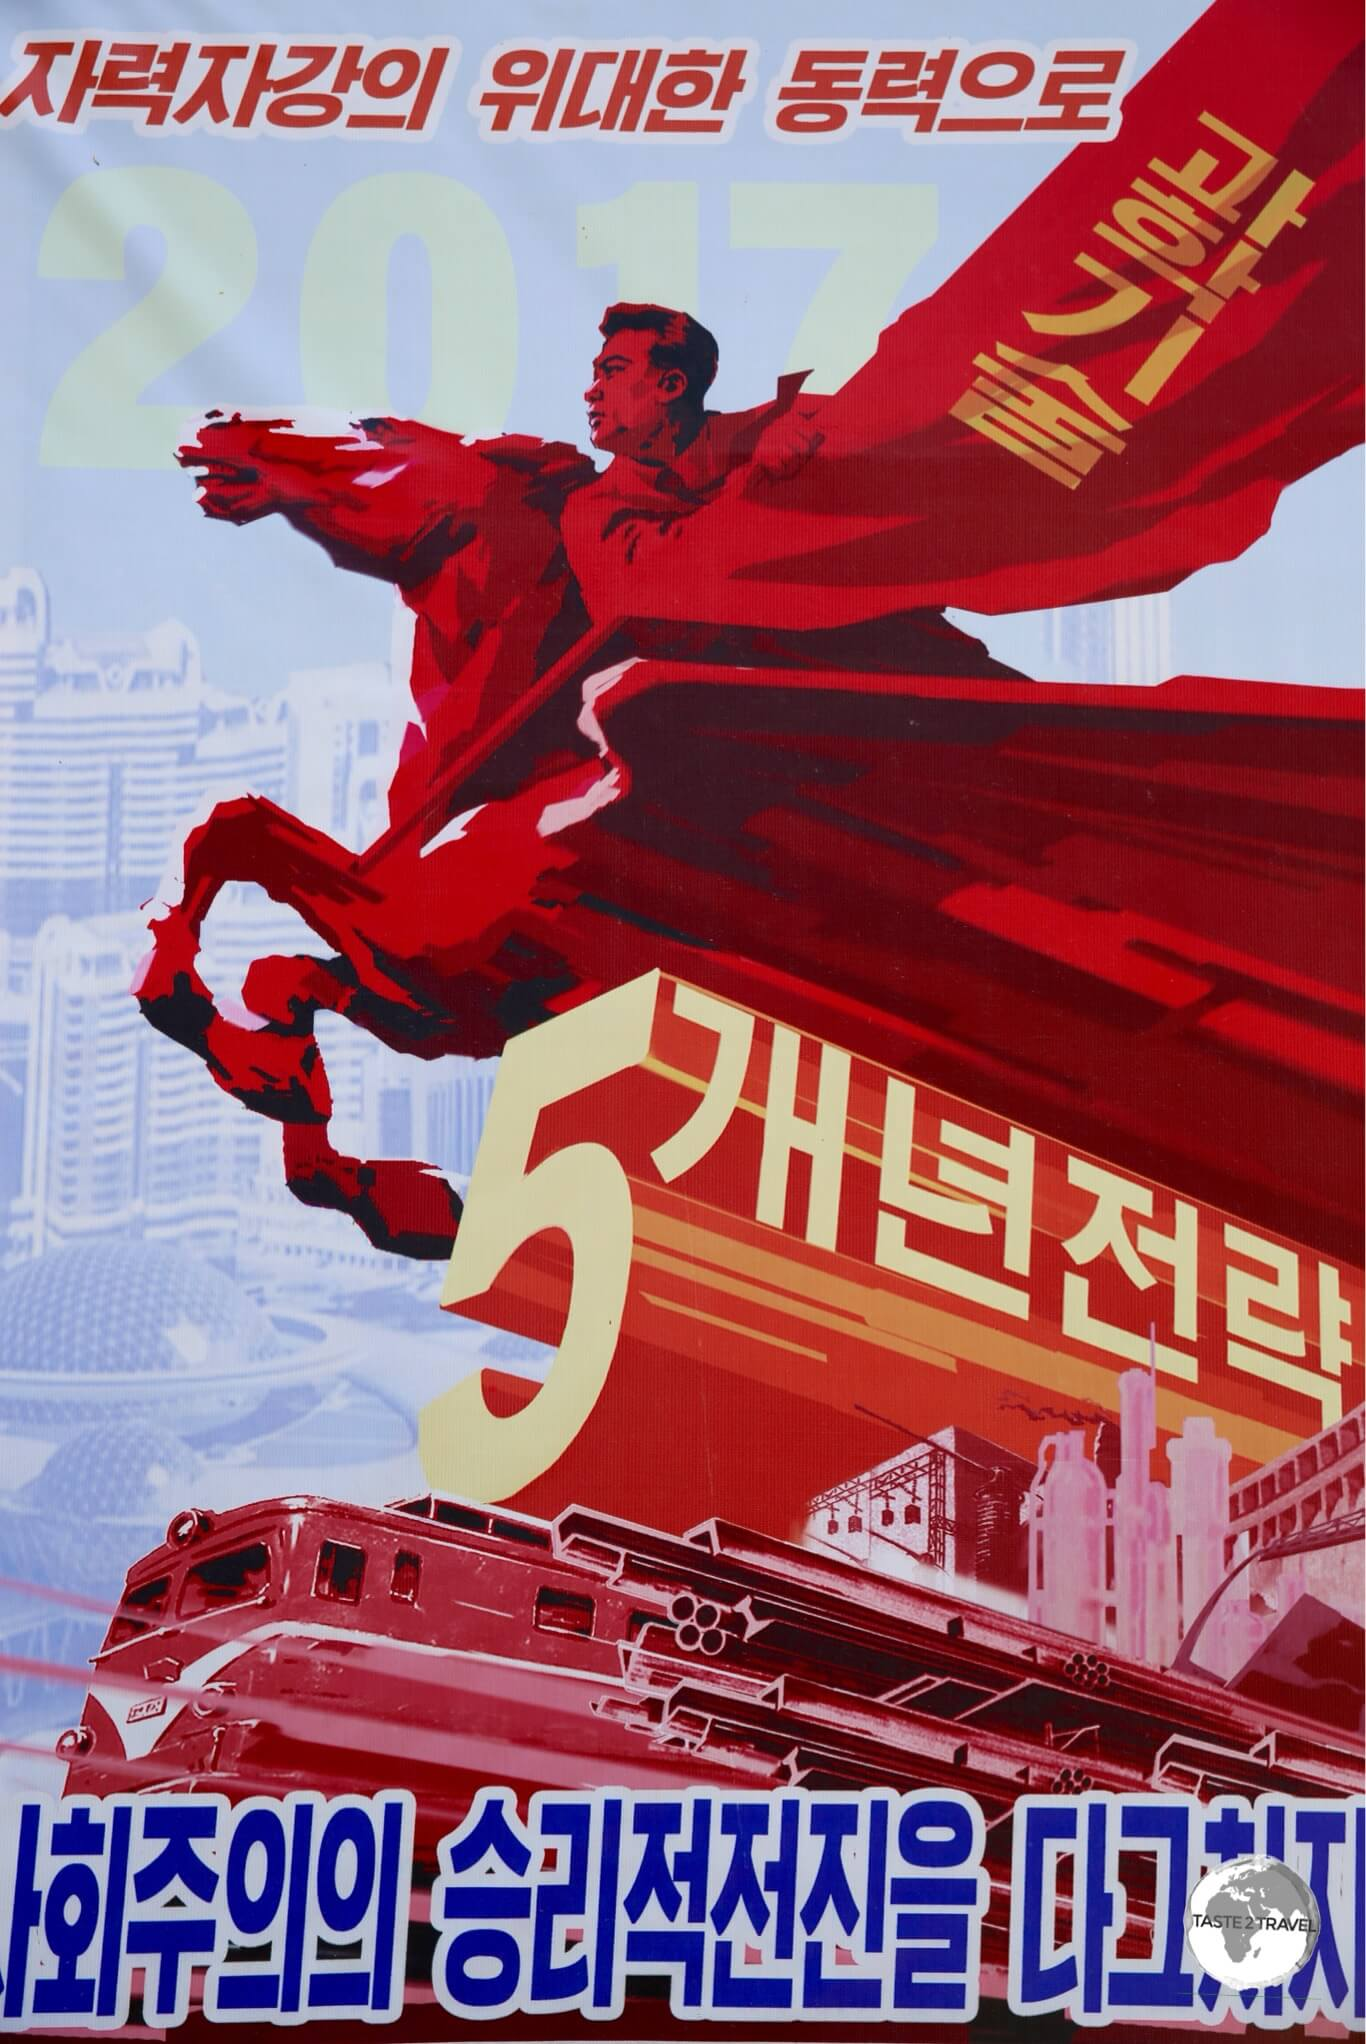 The legendary winged horse Chollima was said to have been able to gallop 400 km in one day, and appears in a number of East Asian traditions. In the DPRK, the name is synonymous with speed and efficiency.